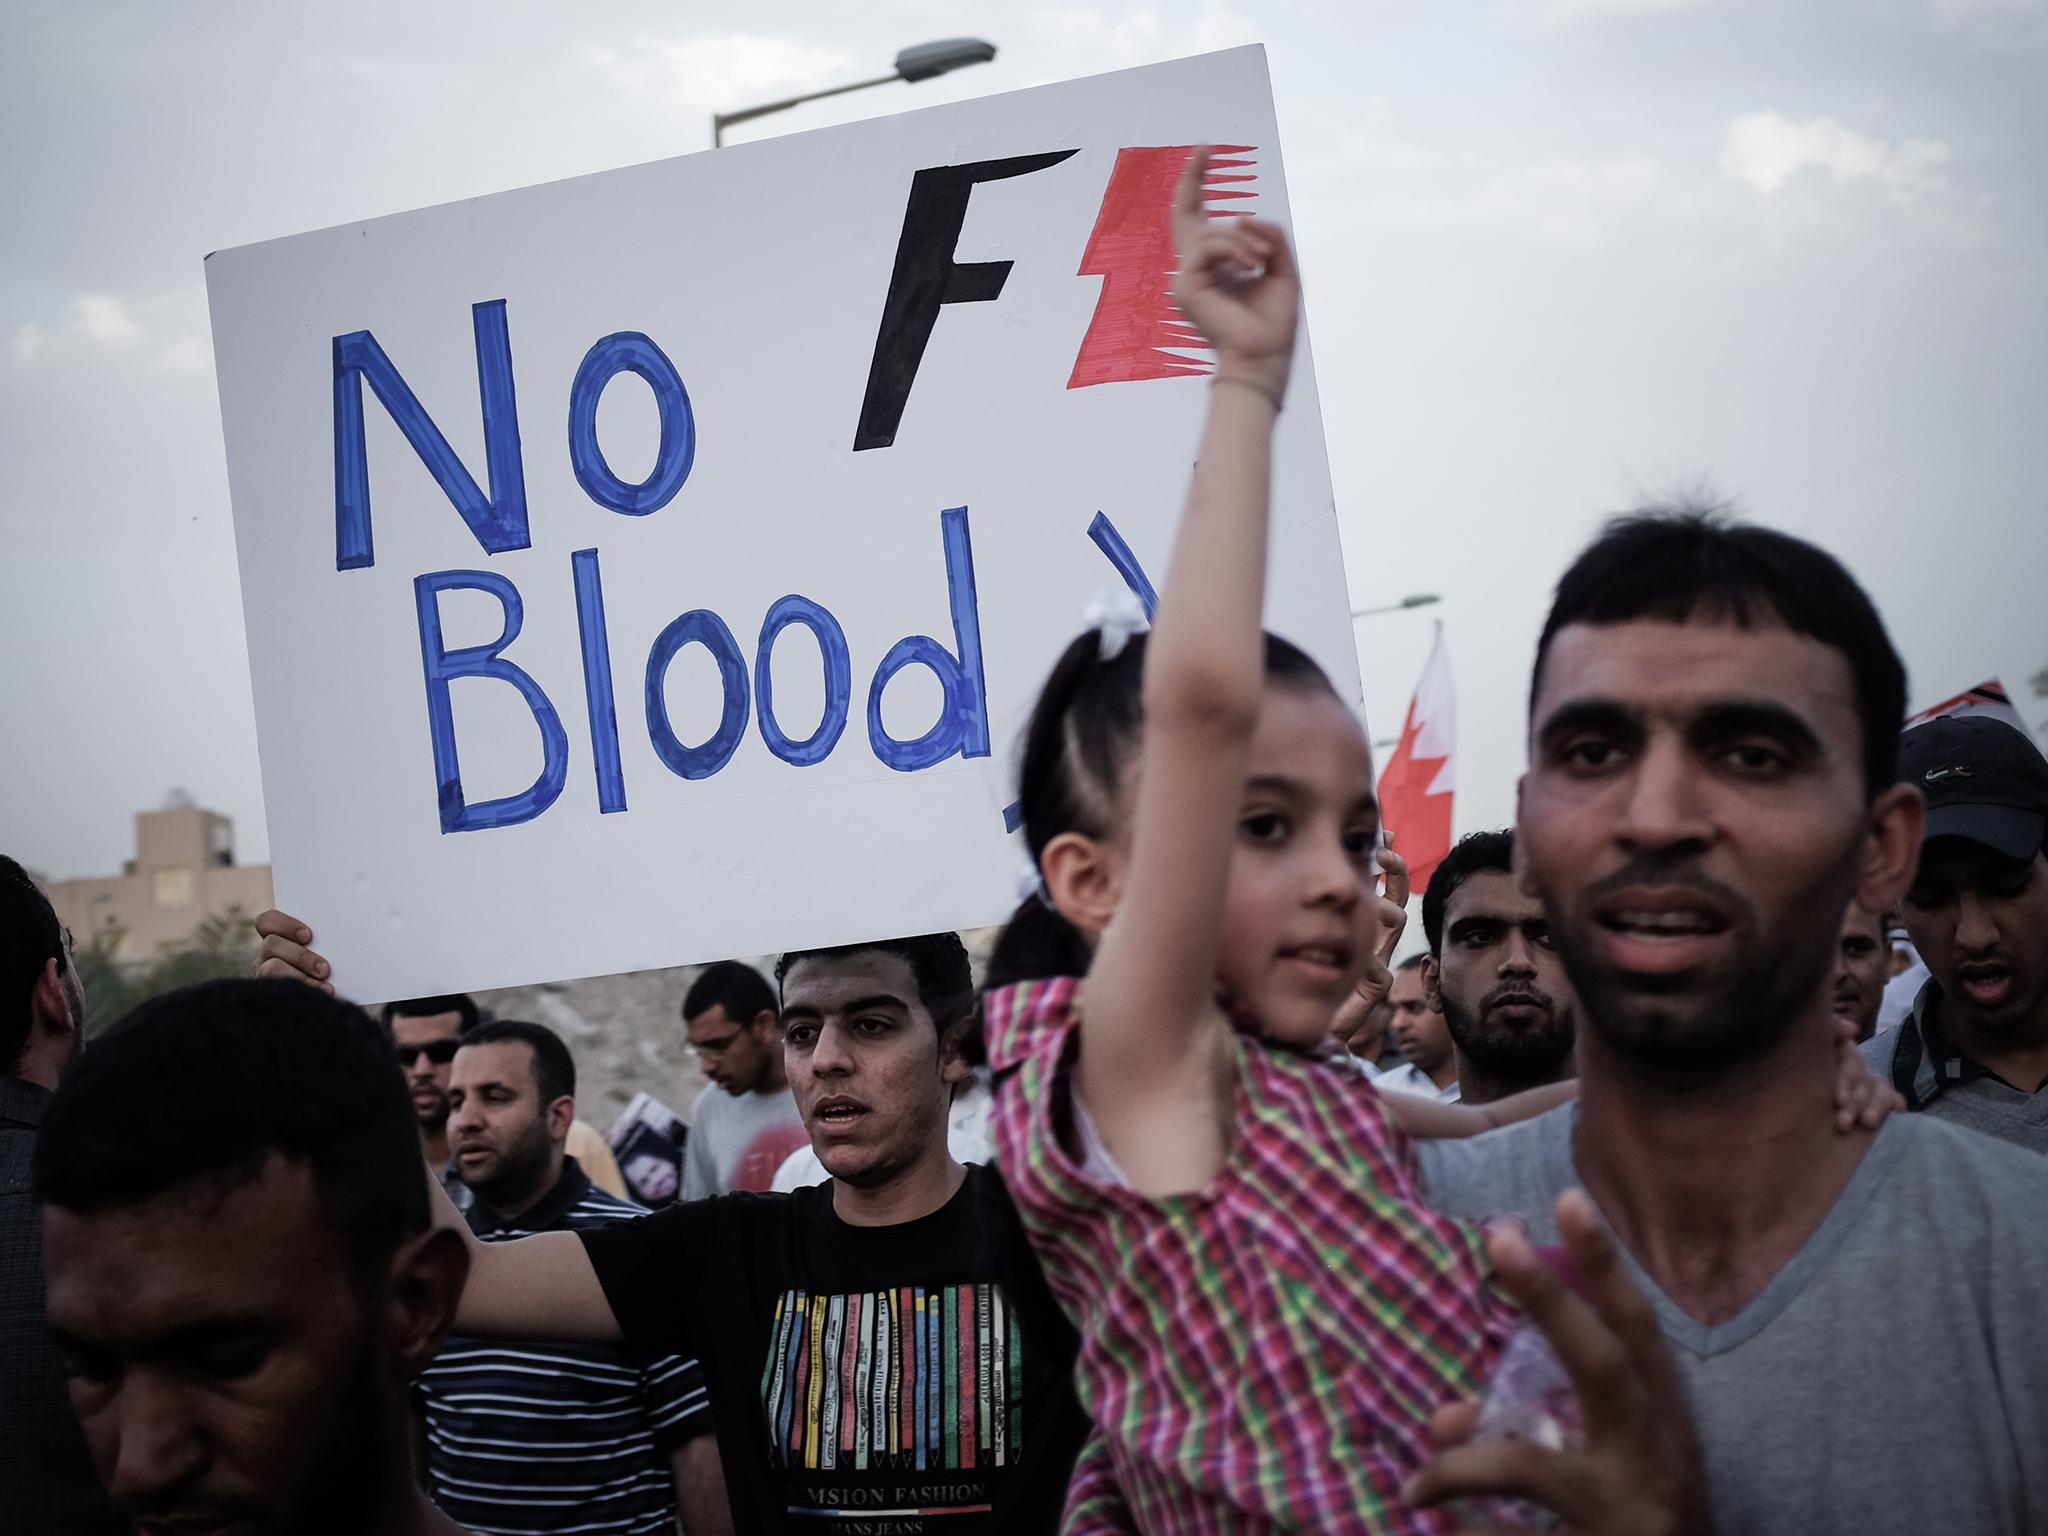 Bahrain Grand Prix: The shocking imprisonment of Najah Yusuf shows why F1 has a huge role to play in fighting human rights abuses